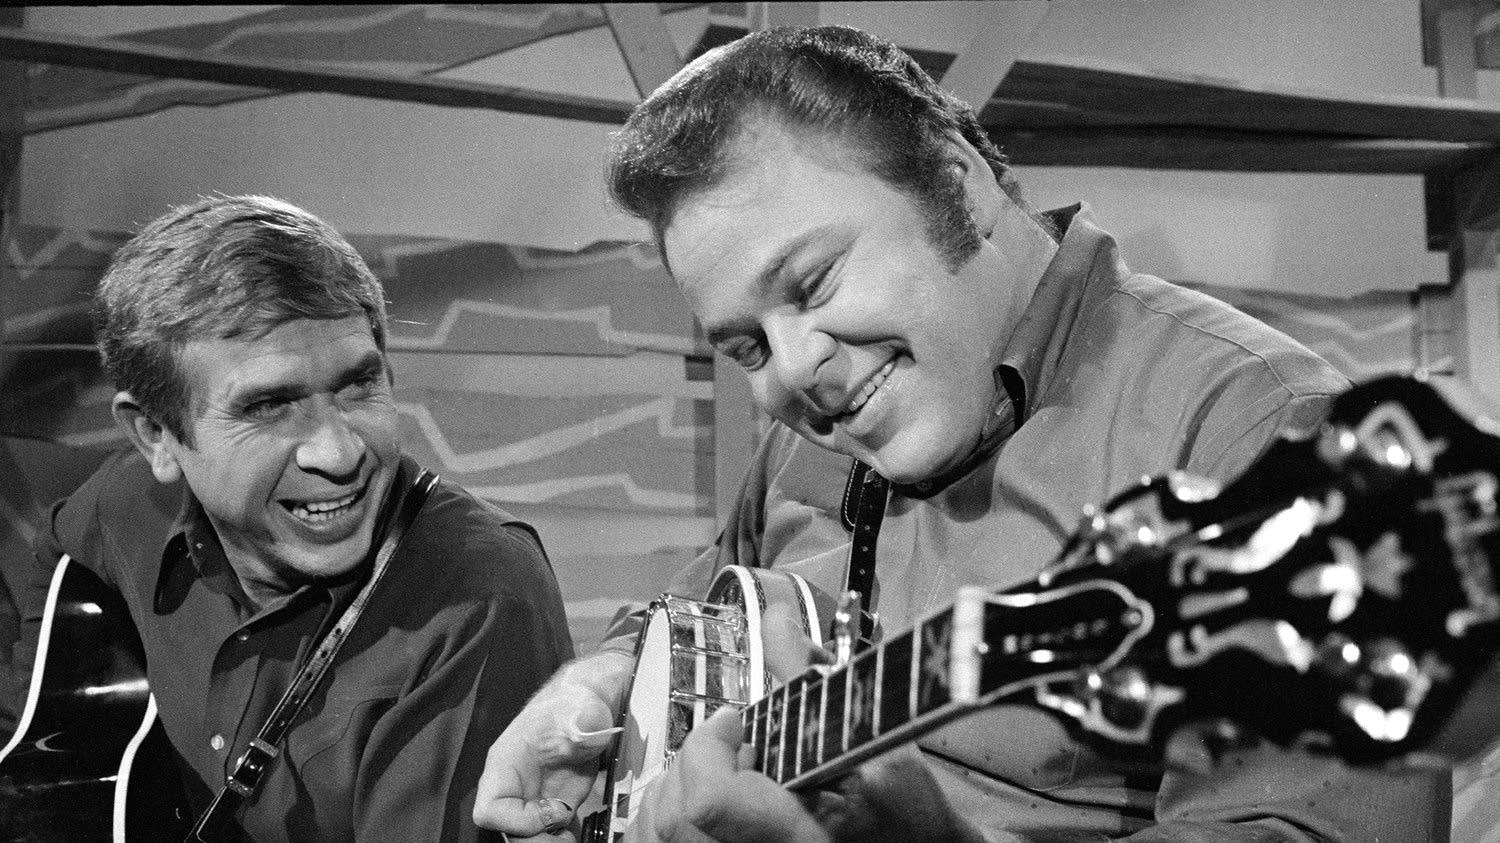 'Hee Haw' co-hosts Roy Clark, right, and Buck Owens in 1969